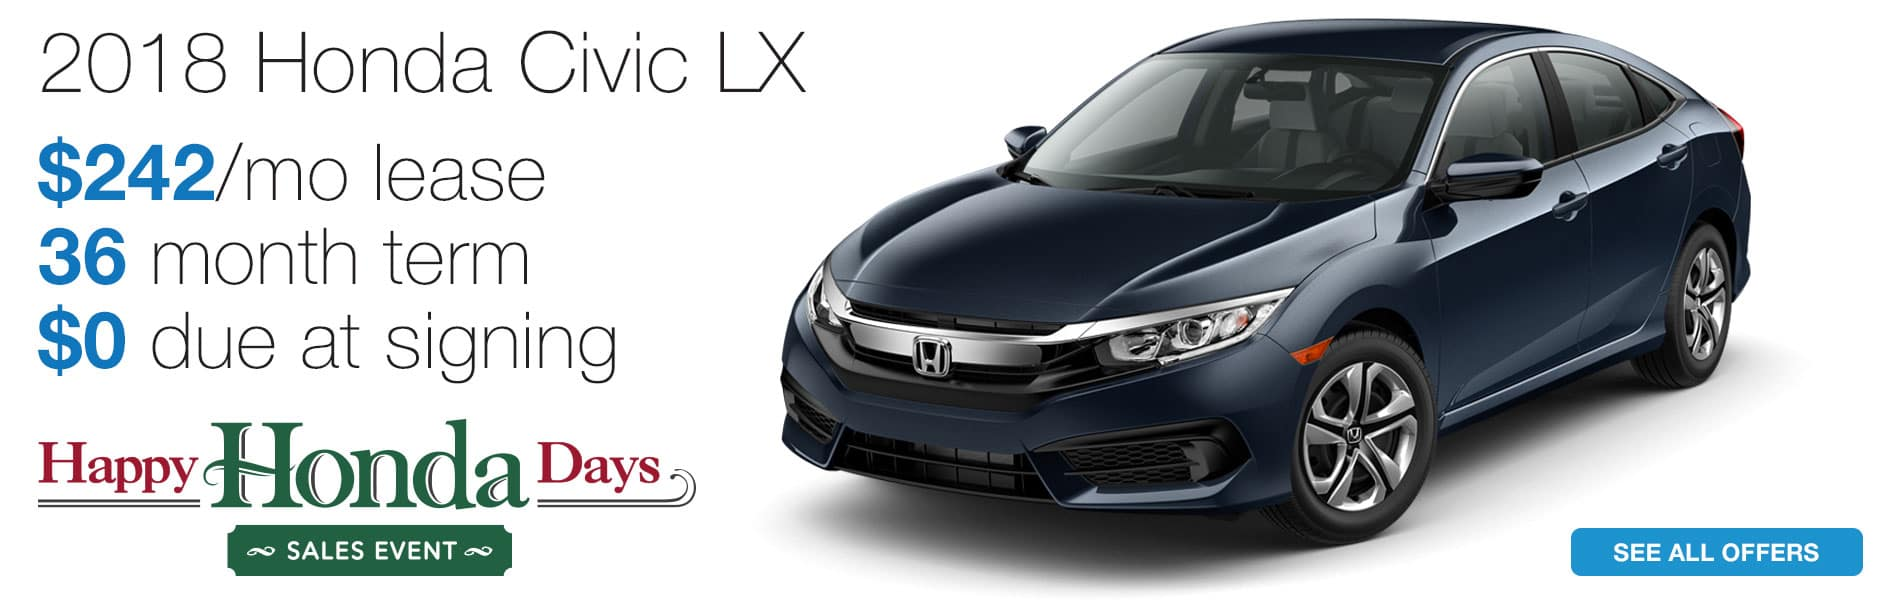 Lease a 2018 Honda Civic LX for $242 per month lease with $0 due at signing